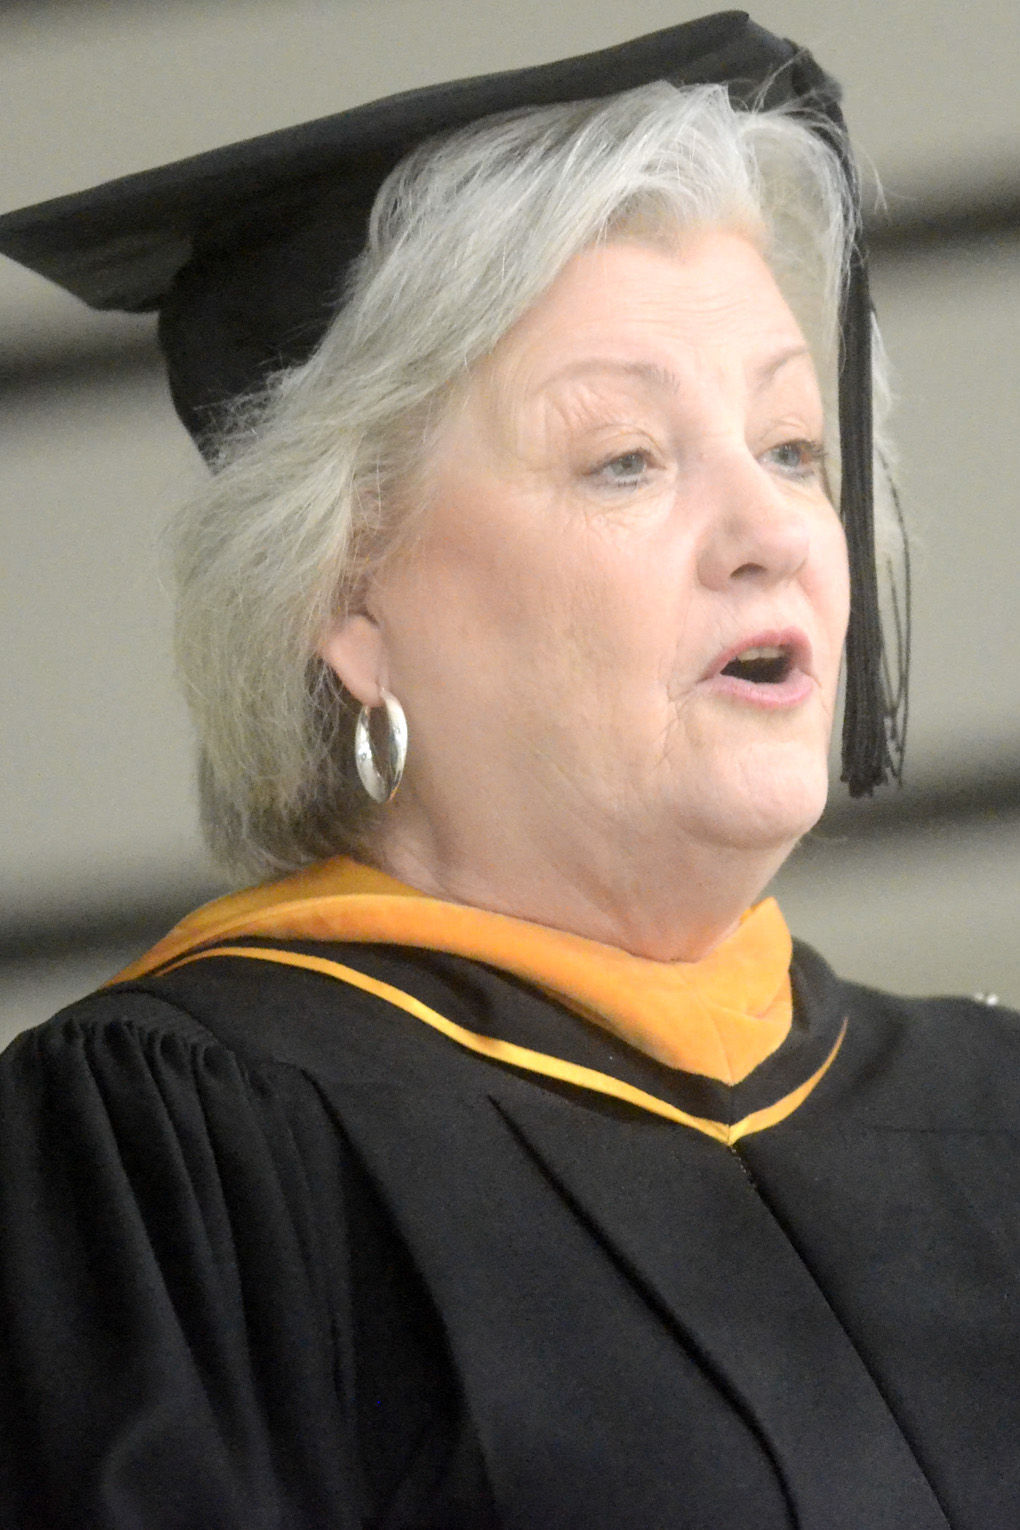 OCtech graduates told 'Your education doesn't stop here' | News ...